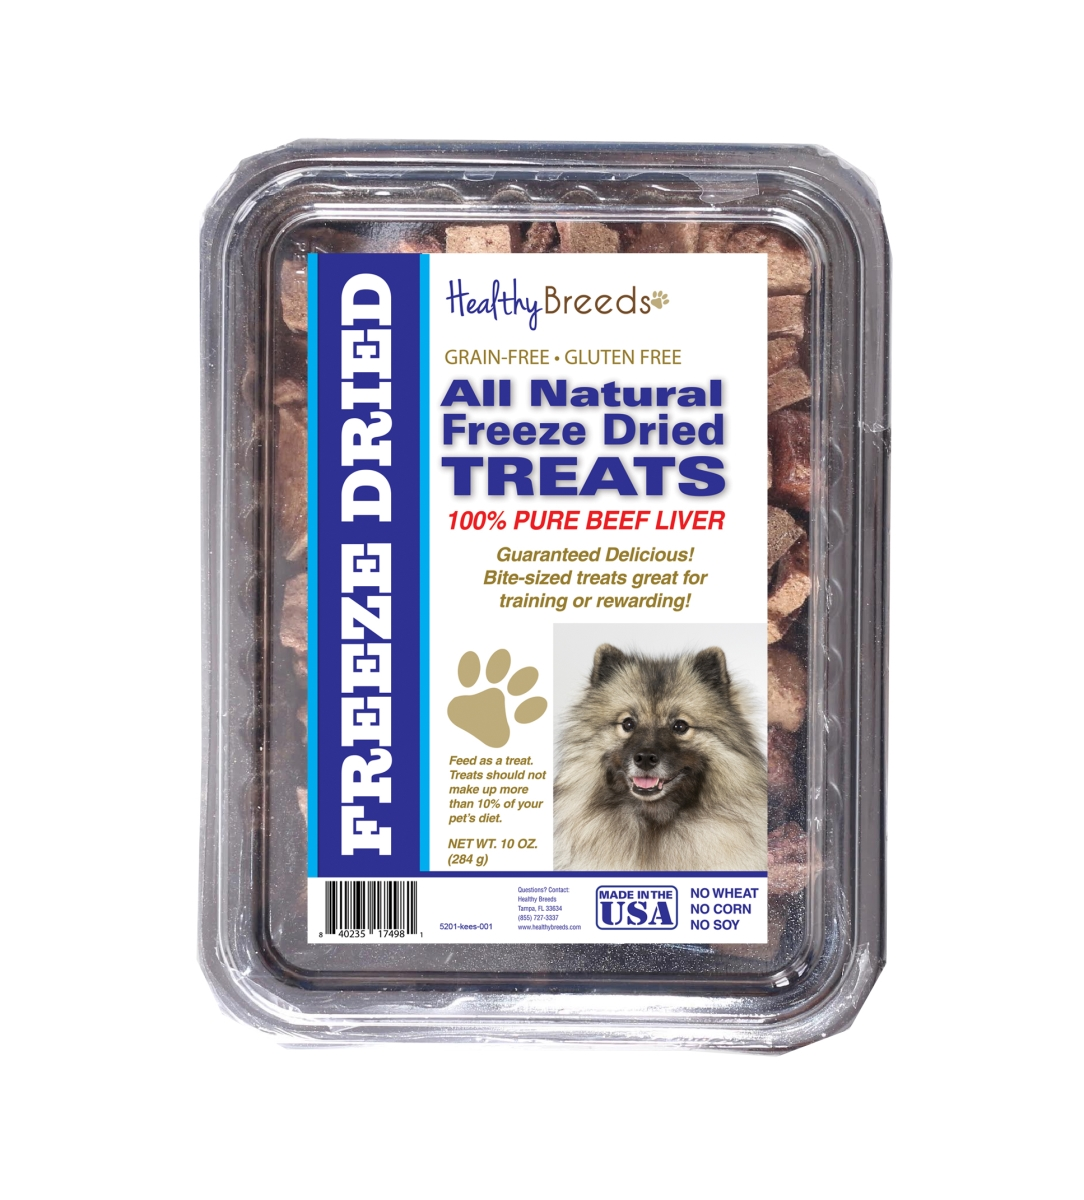 Healthy Breeds 840235174981 10 oz Keeshonden All Natural Freeze Dried Treats Beef Liver